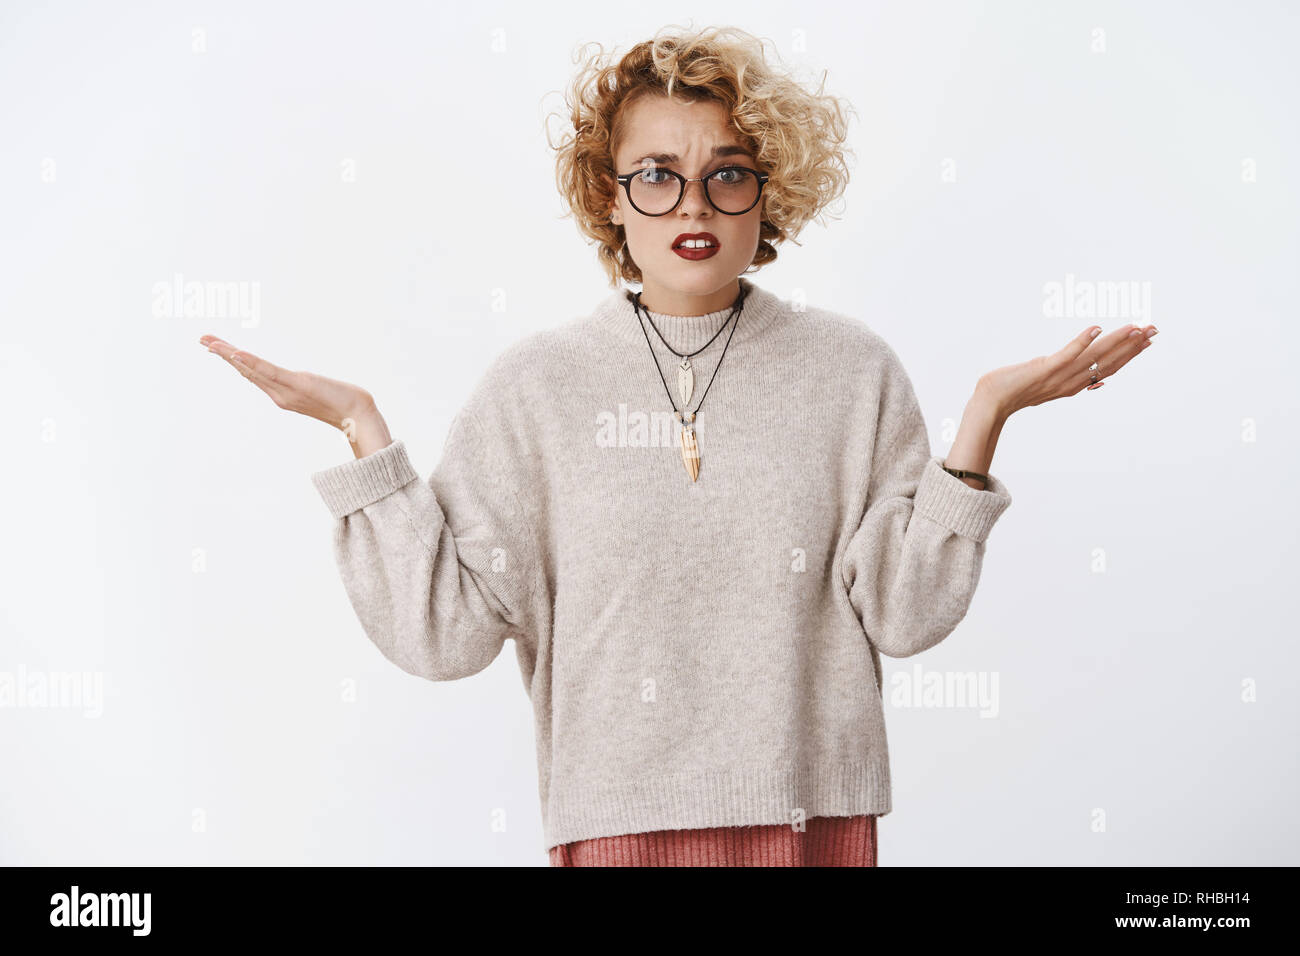 What hell was that, explain. Frustrated and questioned woman in dismay and confusion raise hands sideways and shrugging lifting eyebrow in questioned - Stock Image